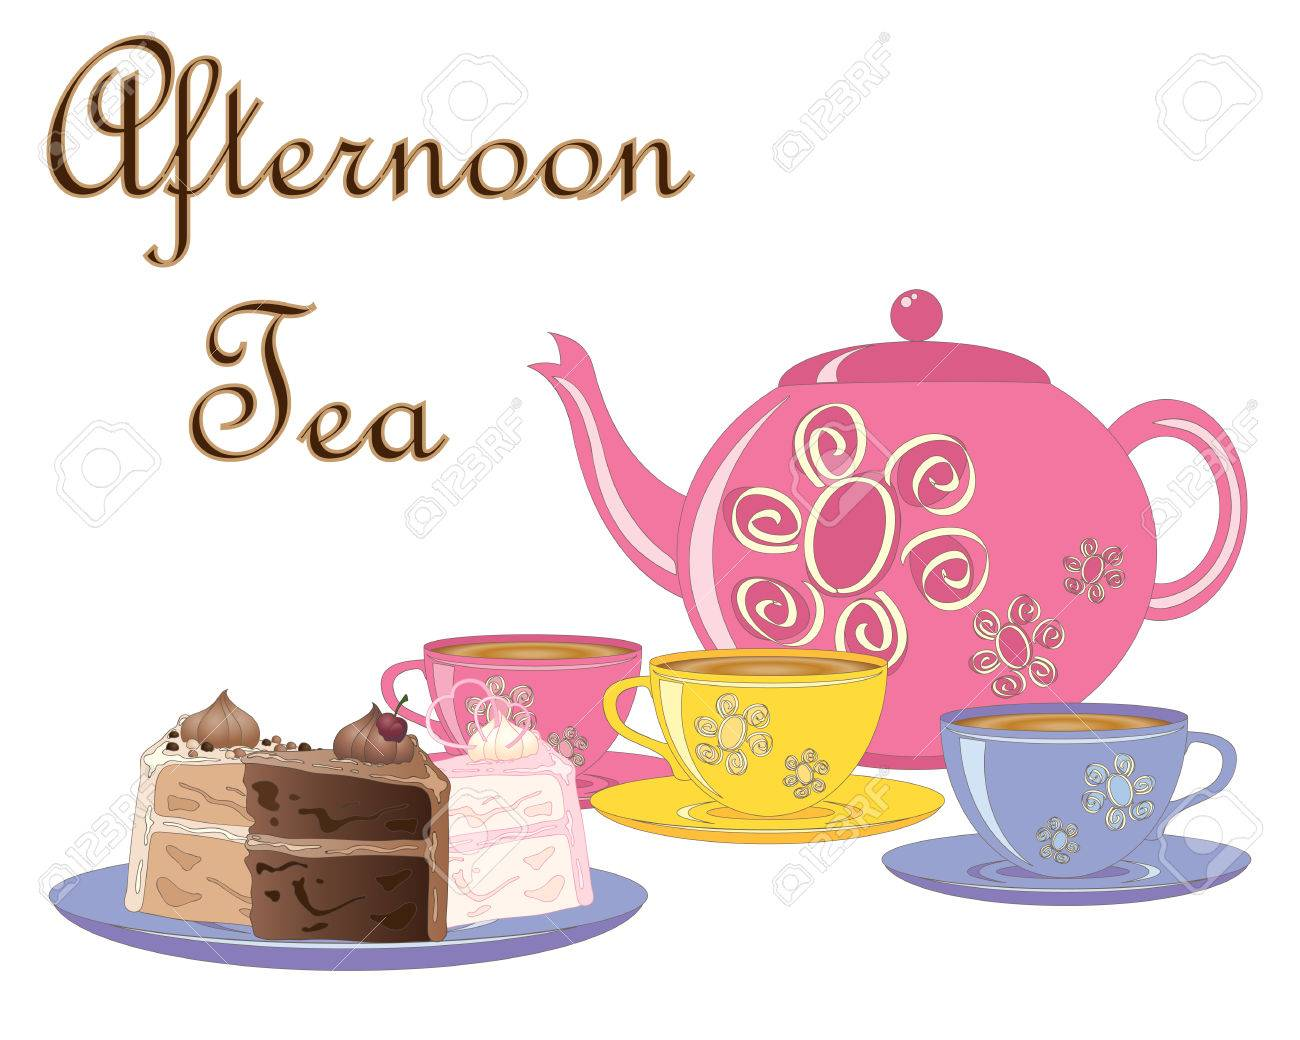 An Illustration Of A Selection Of Fancy Cakes Teapot And Tea Royalty Free Cliparts Vectors And Stock Illustration Image 81504952